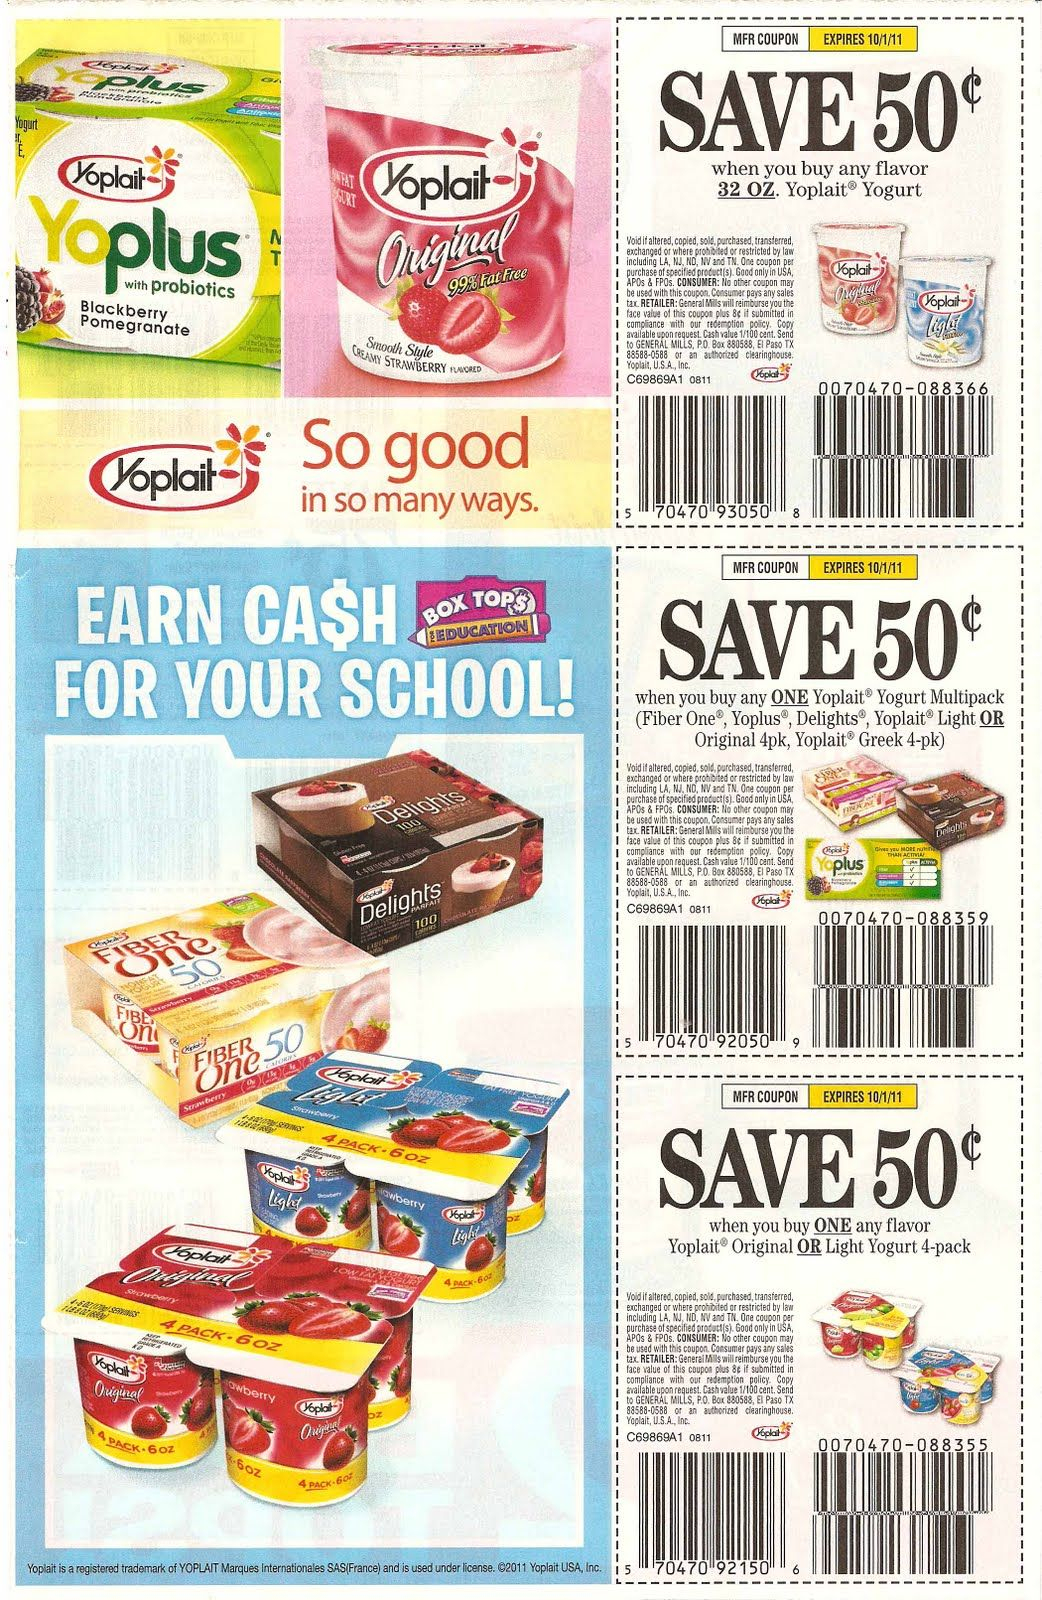 Free Printable Grocery Coupons For Groceries, Food, Family And - Free Printable Coupons For Food